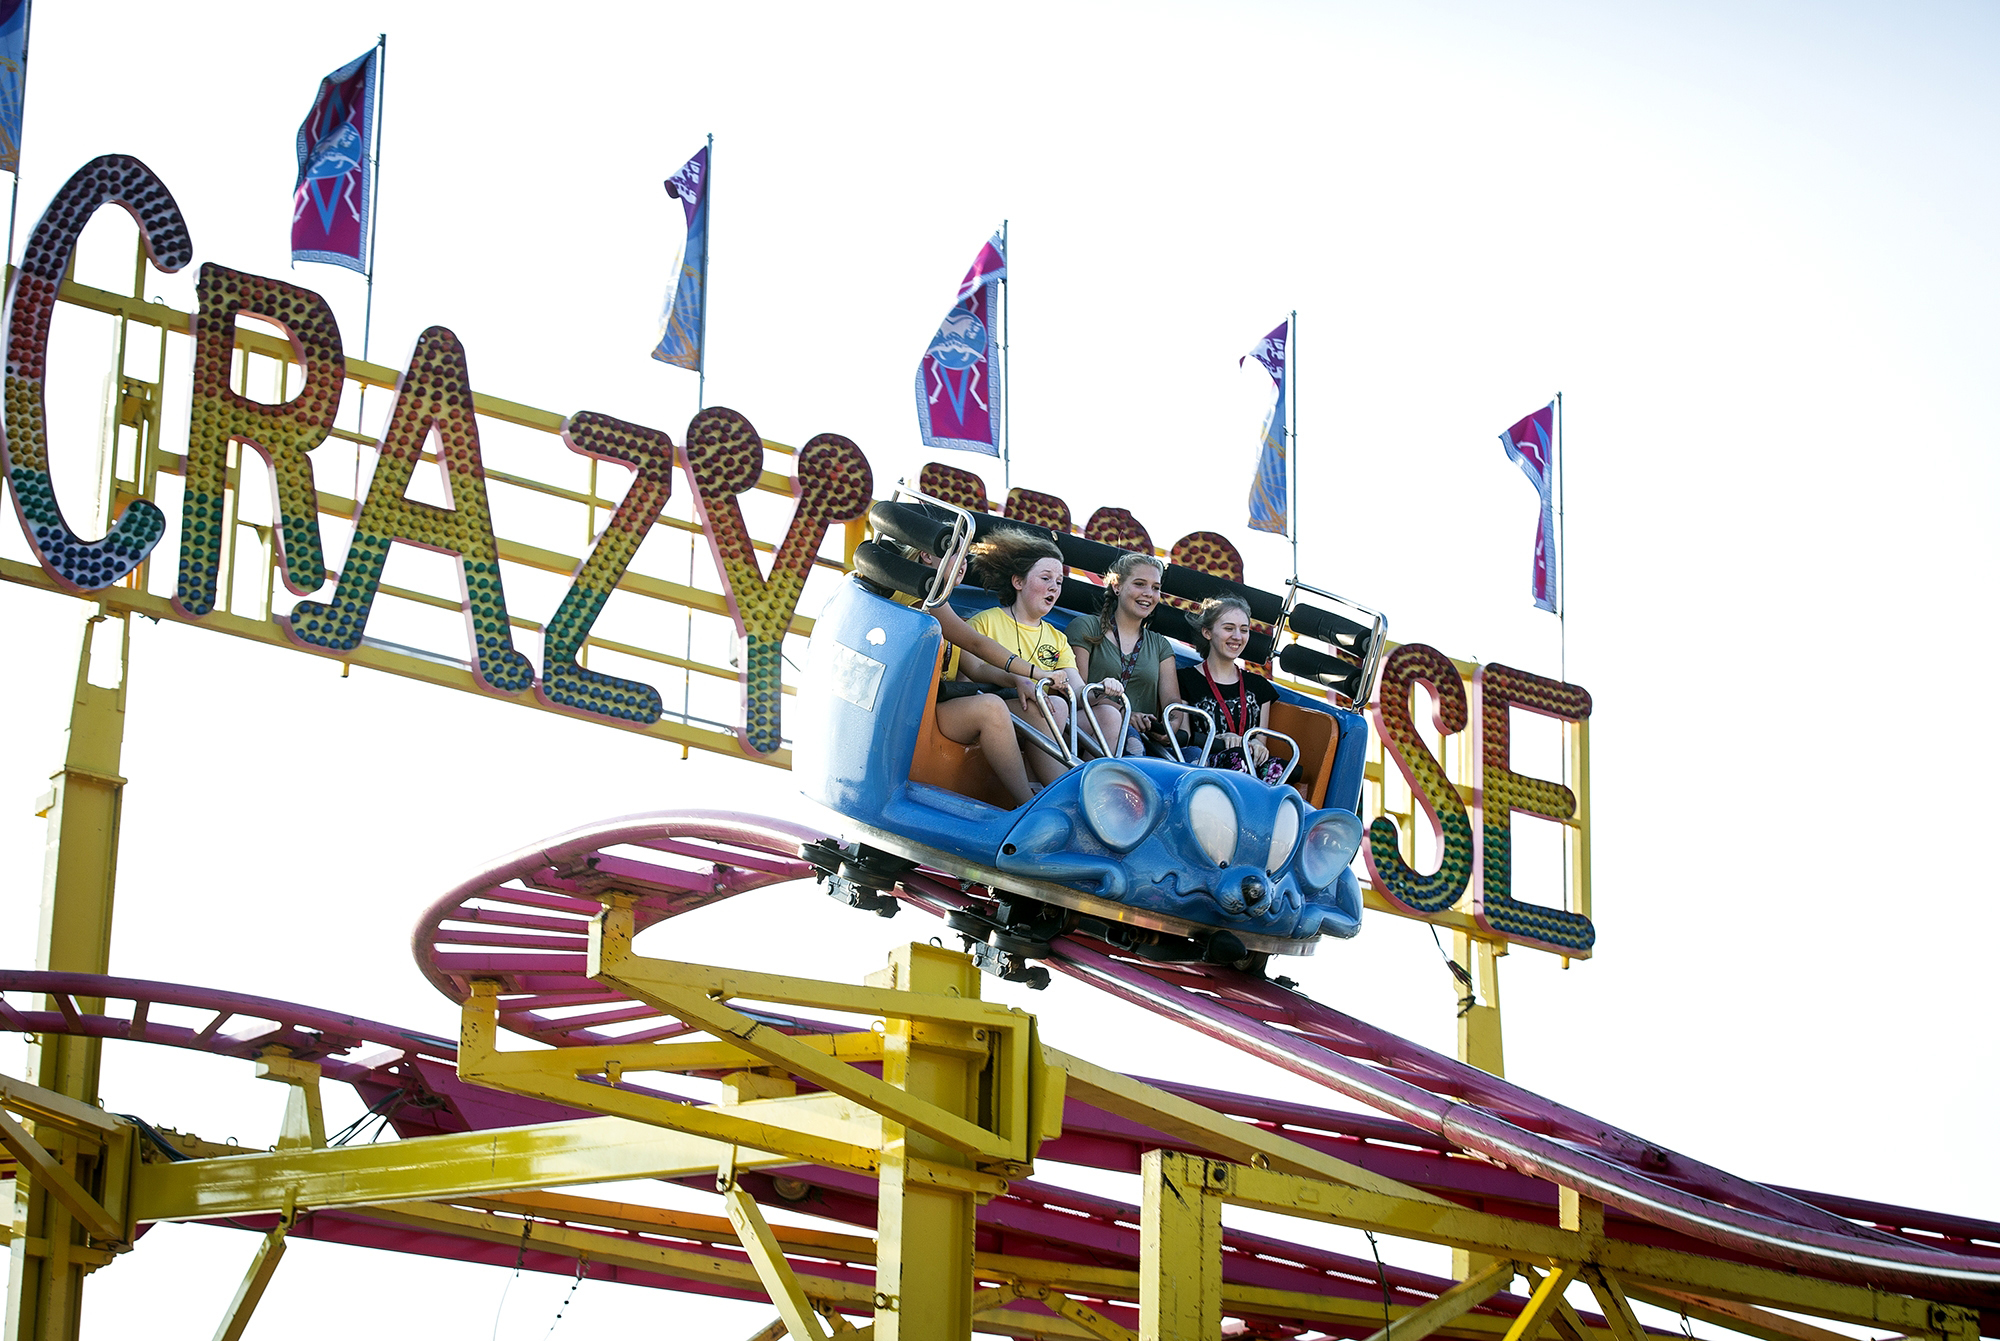 the Magic Mouse roller coaster is a new feature in the carnival this year at the Illinois State Fair. The ride was photographed Saturday, Aug. 11, 2018 on the fairgrounds in Springfield, Ill. [Rich Saal/The State Journal-Register]